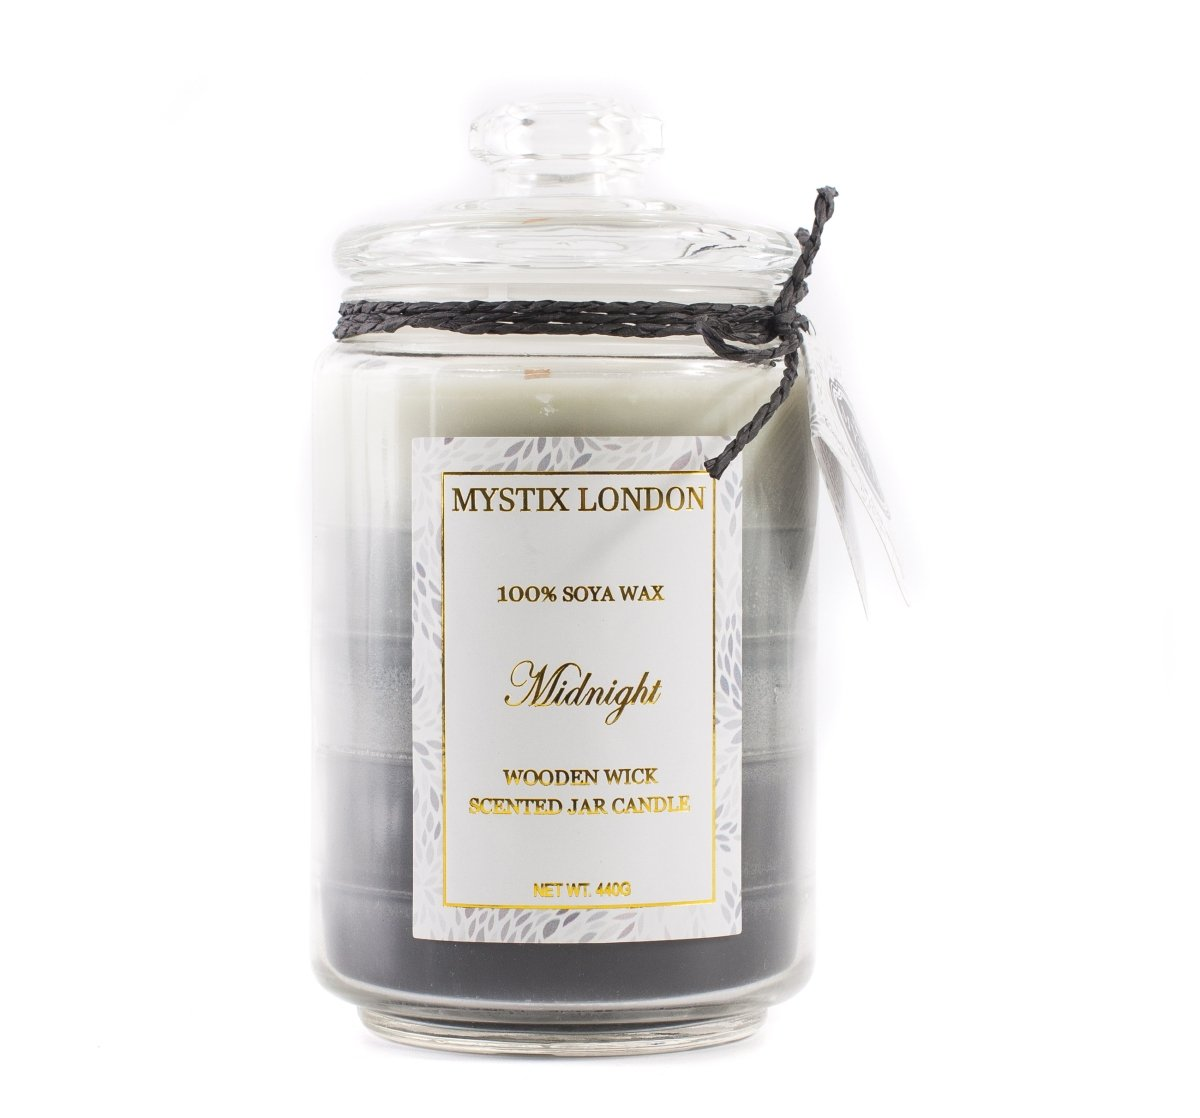 Mystix London Midnight Wooden Wick Scented Jar Candle - Mystic Moments UK